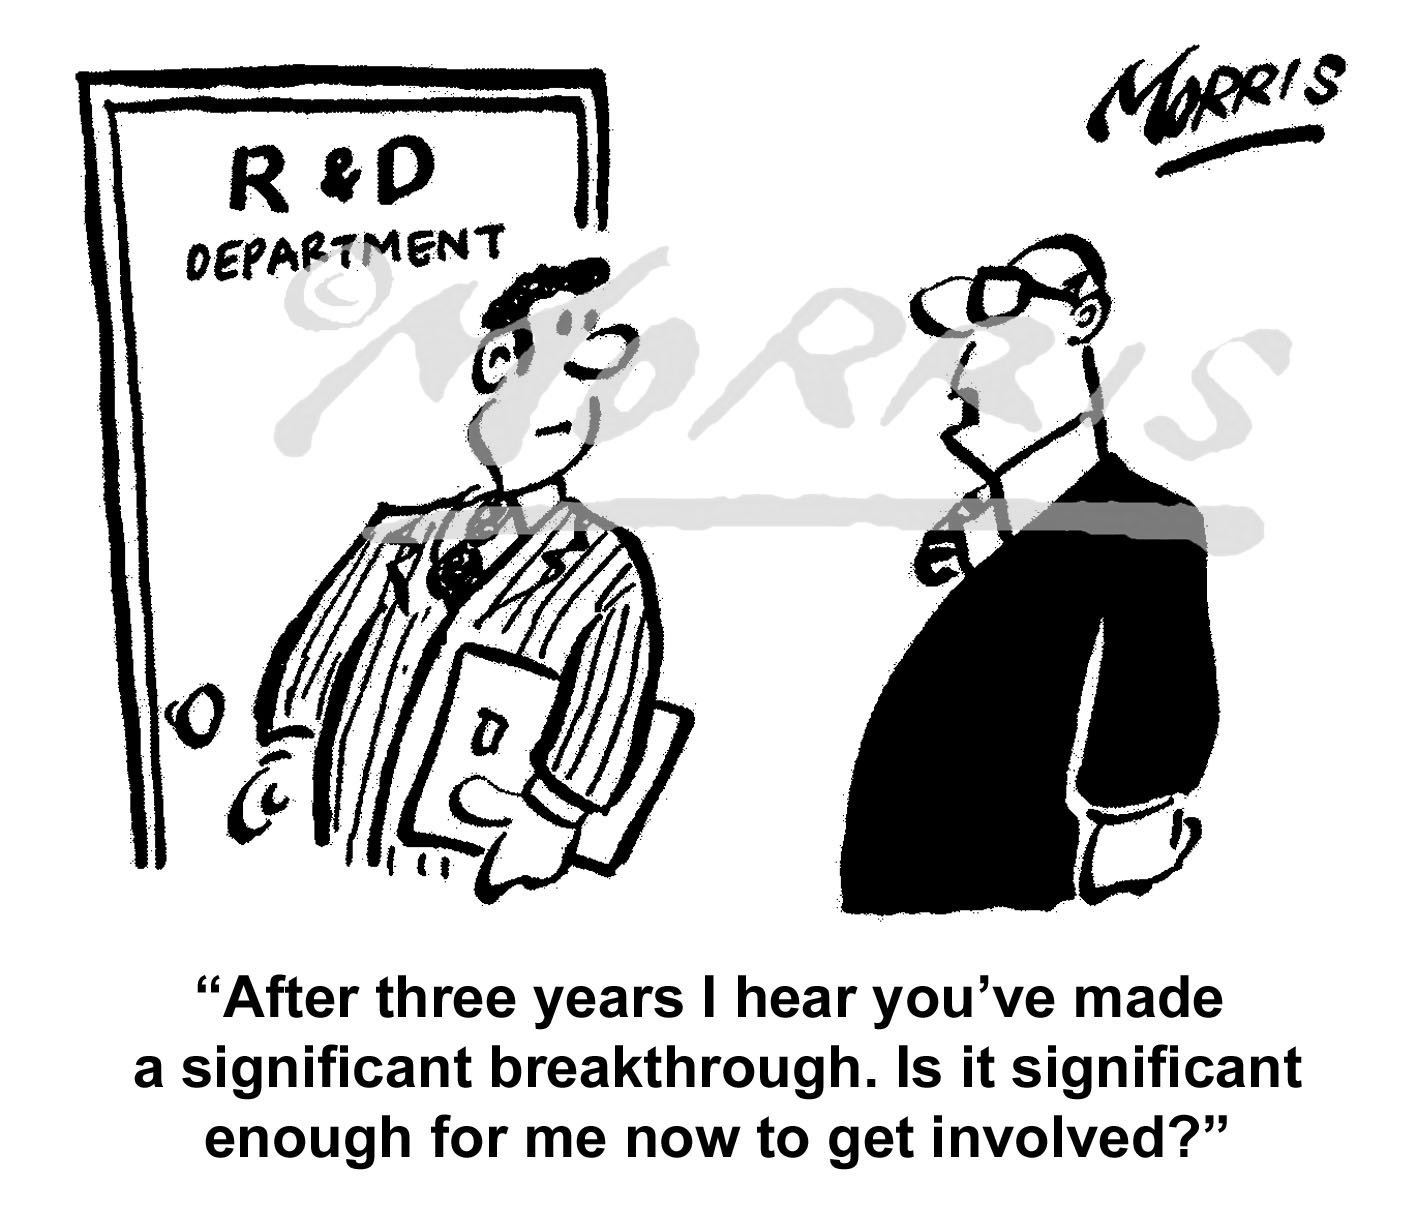 Research & Development cartoon, boss comic – Ref: 7856bw